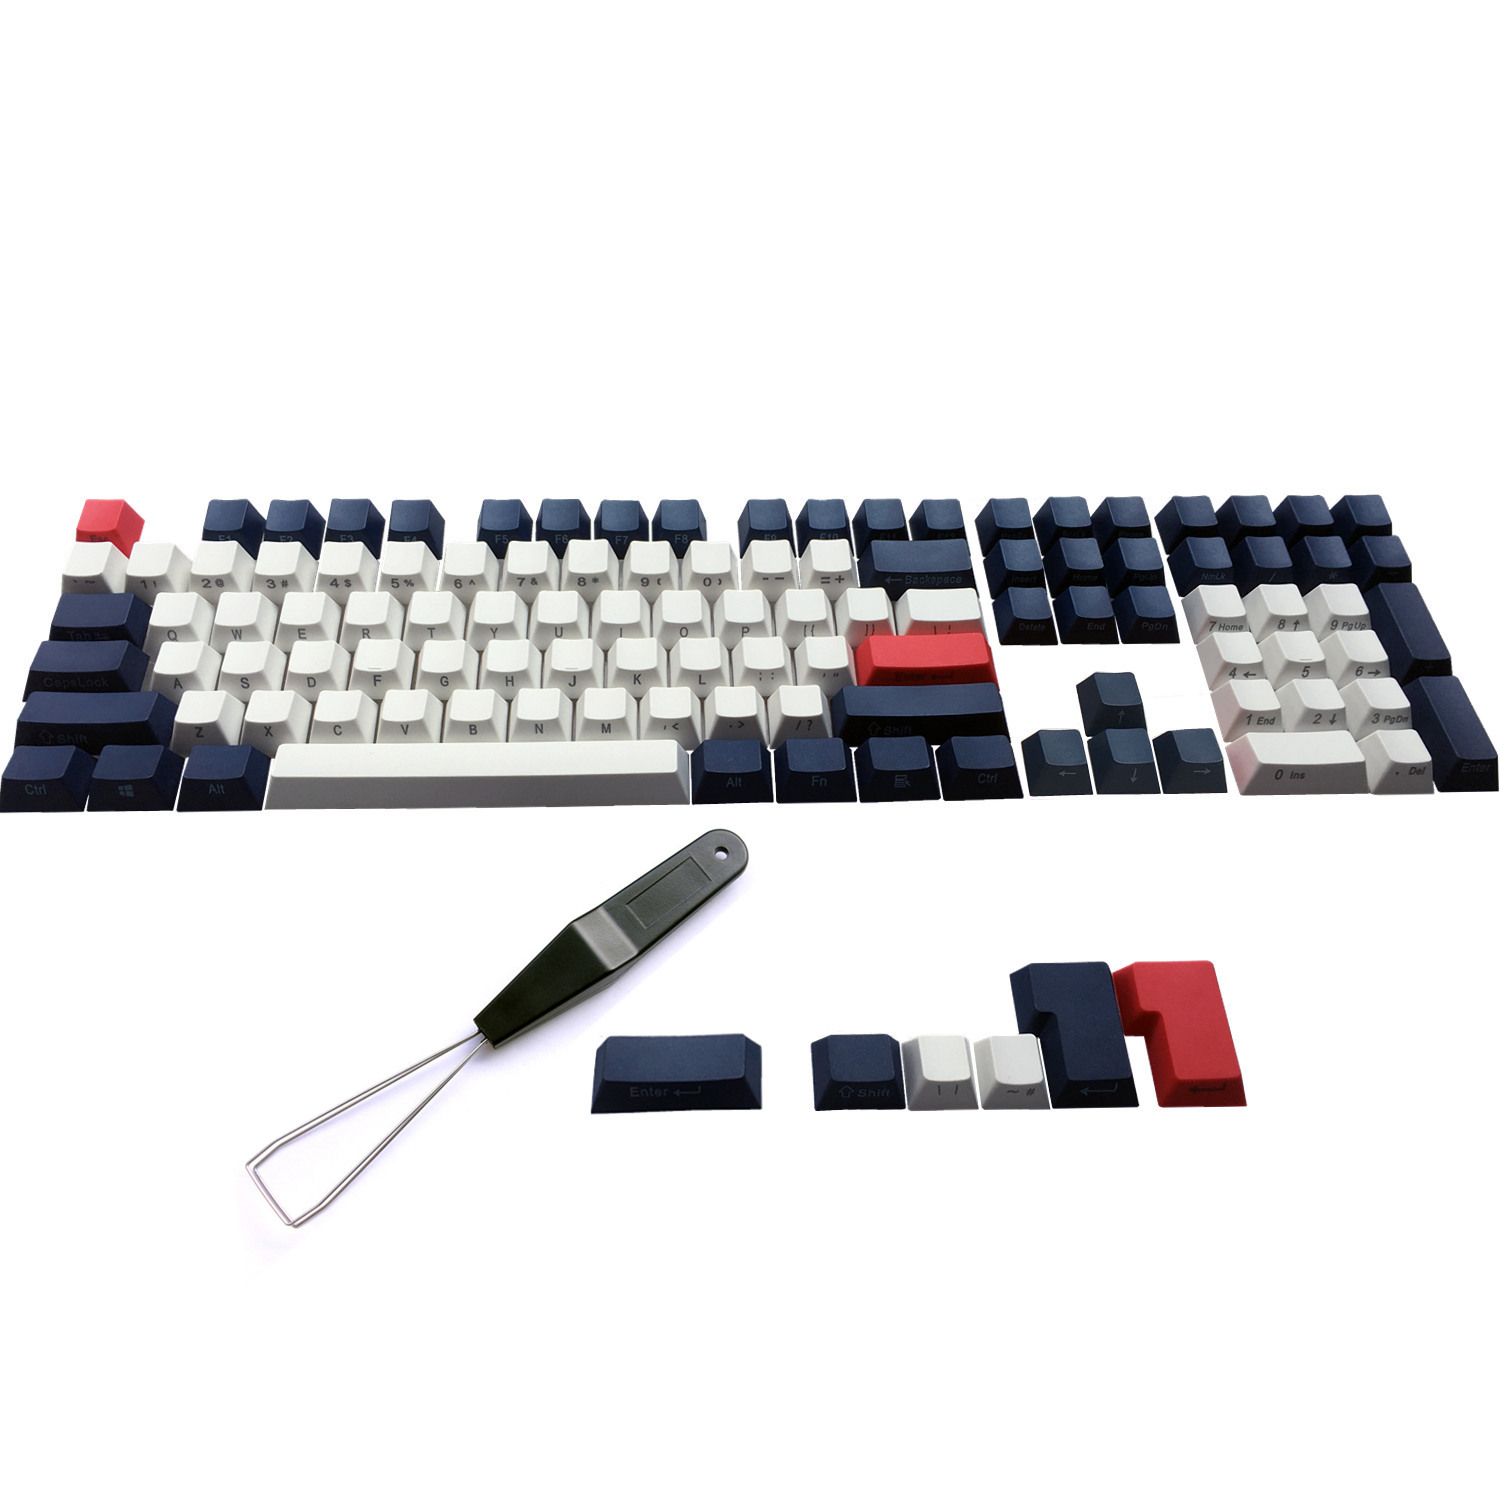 PBT <font><b>Keycaps</b></font> Side Printed ANSI ISO Cherry MX Keycap Set For <font><b>60</b></font>%/TKL 87/104/108 MX Mechanical <font><b>Keyboard</b></font> Fit Anne iKBC Akko X Ducky image